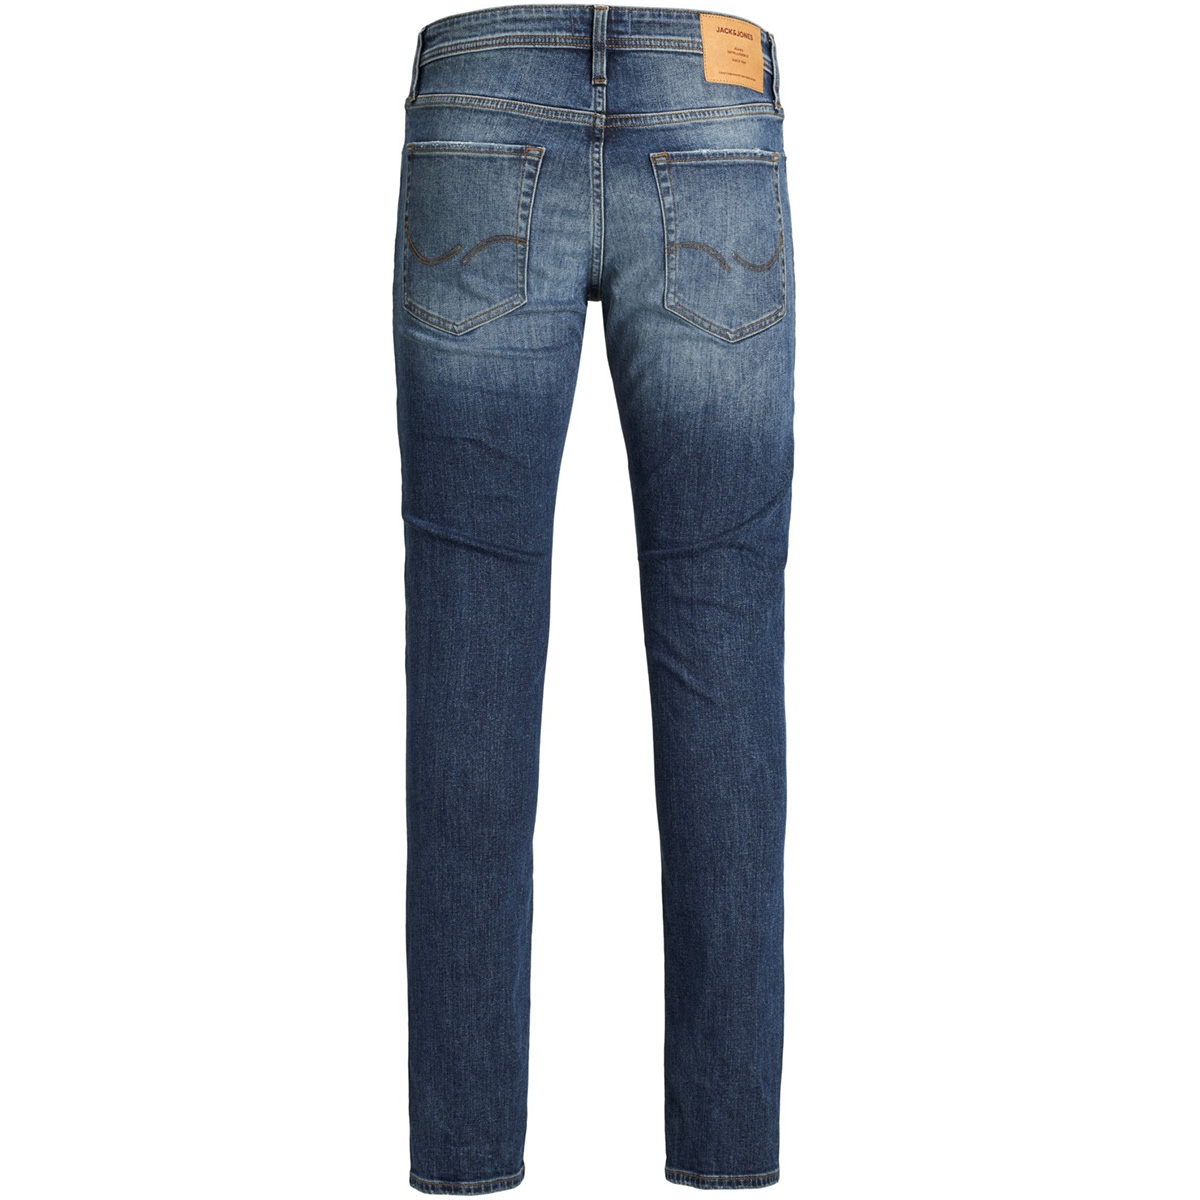 jjiglenn jjoriginal am 918 sts 12161087 jack & jones jeans blue denim